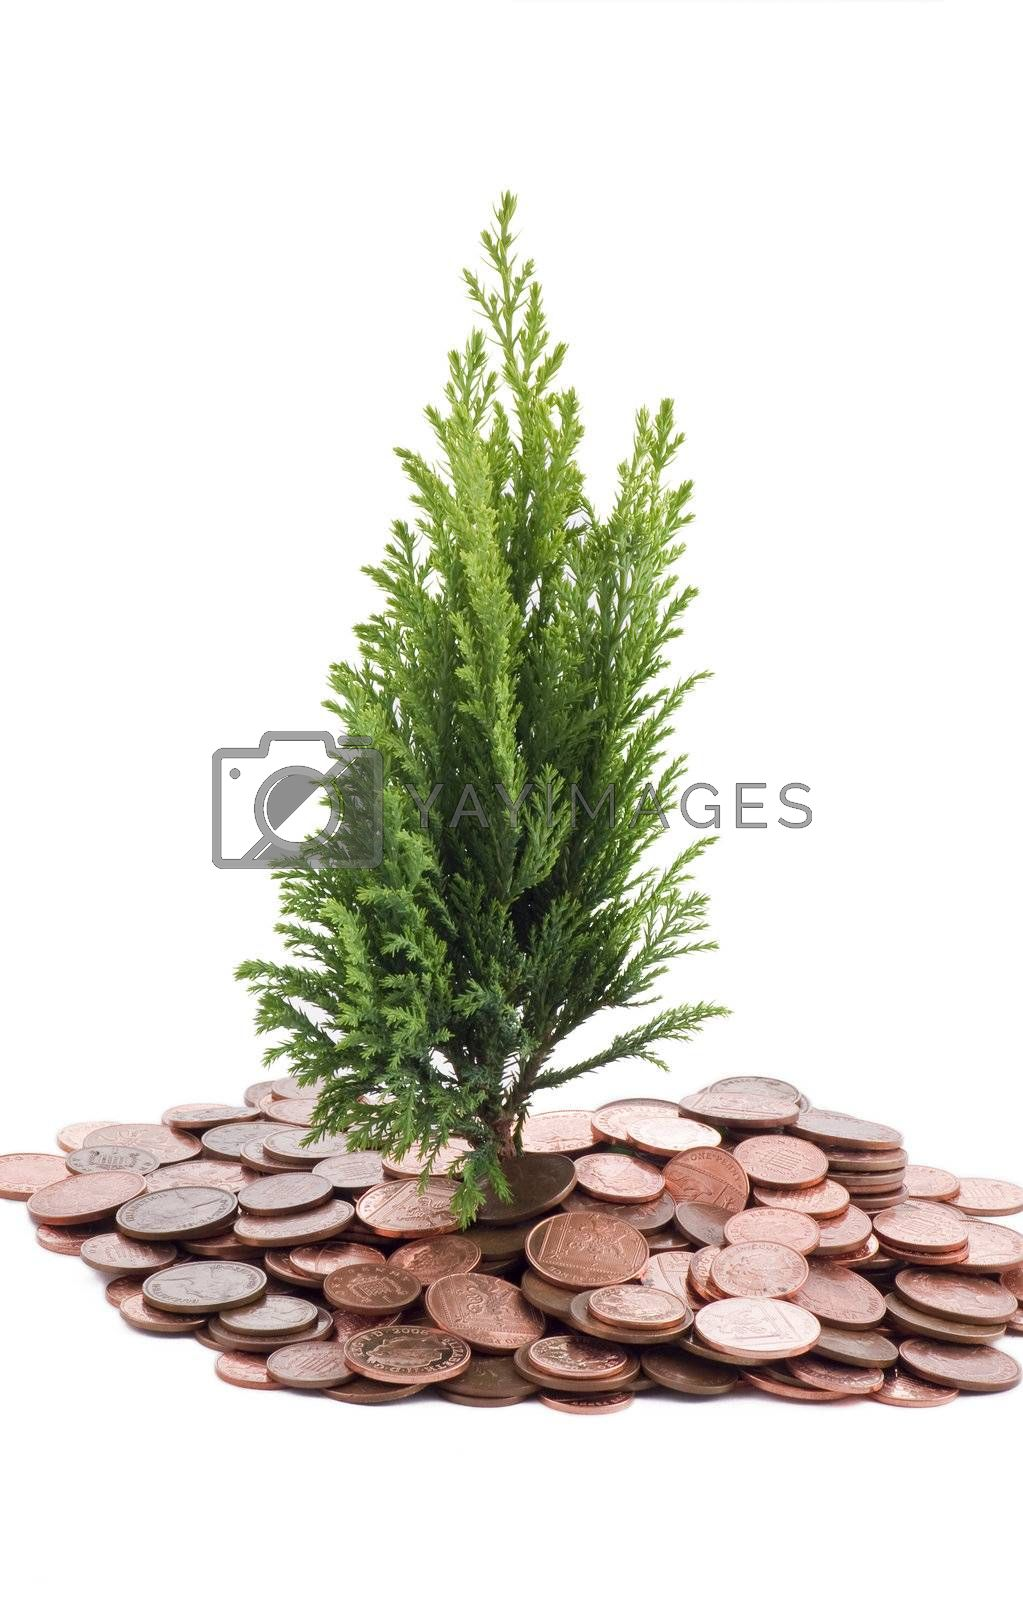 Coins and plant by caldix